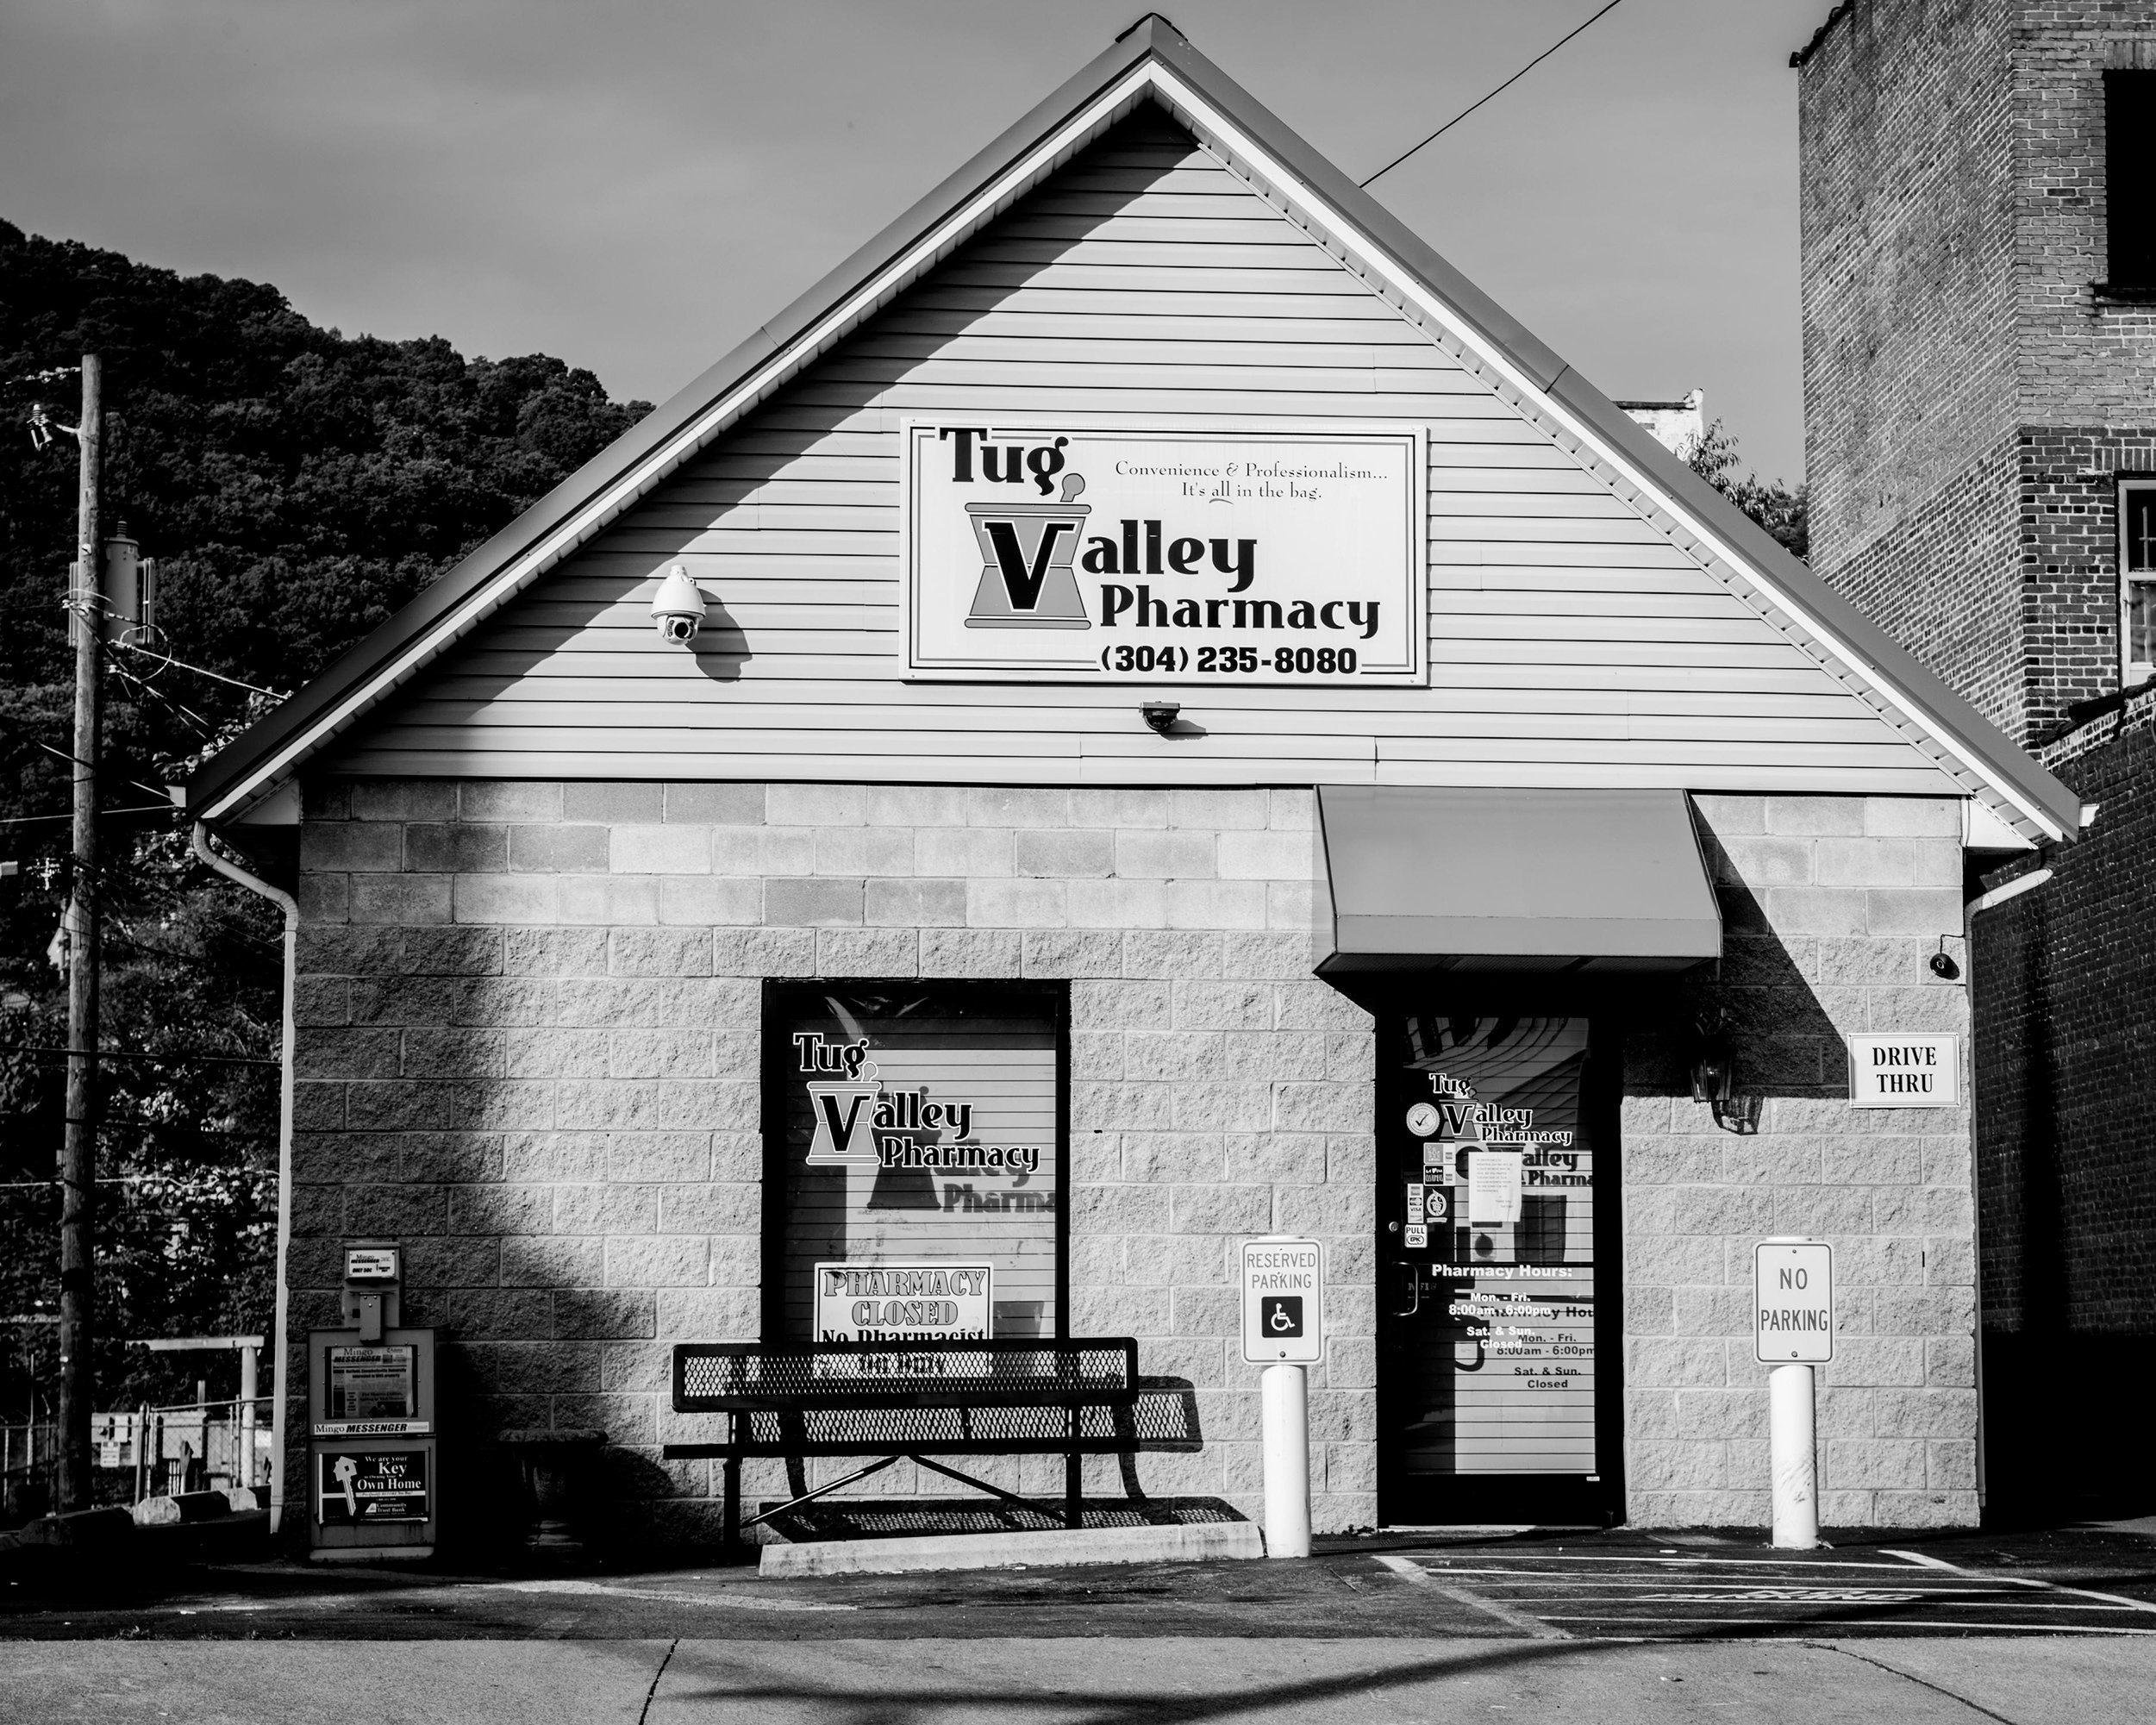 Tug Valley Pharmacy